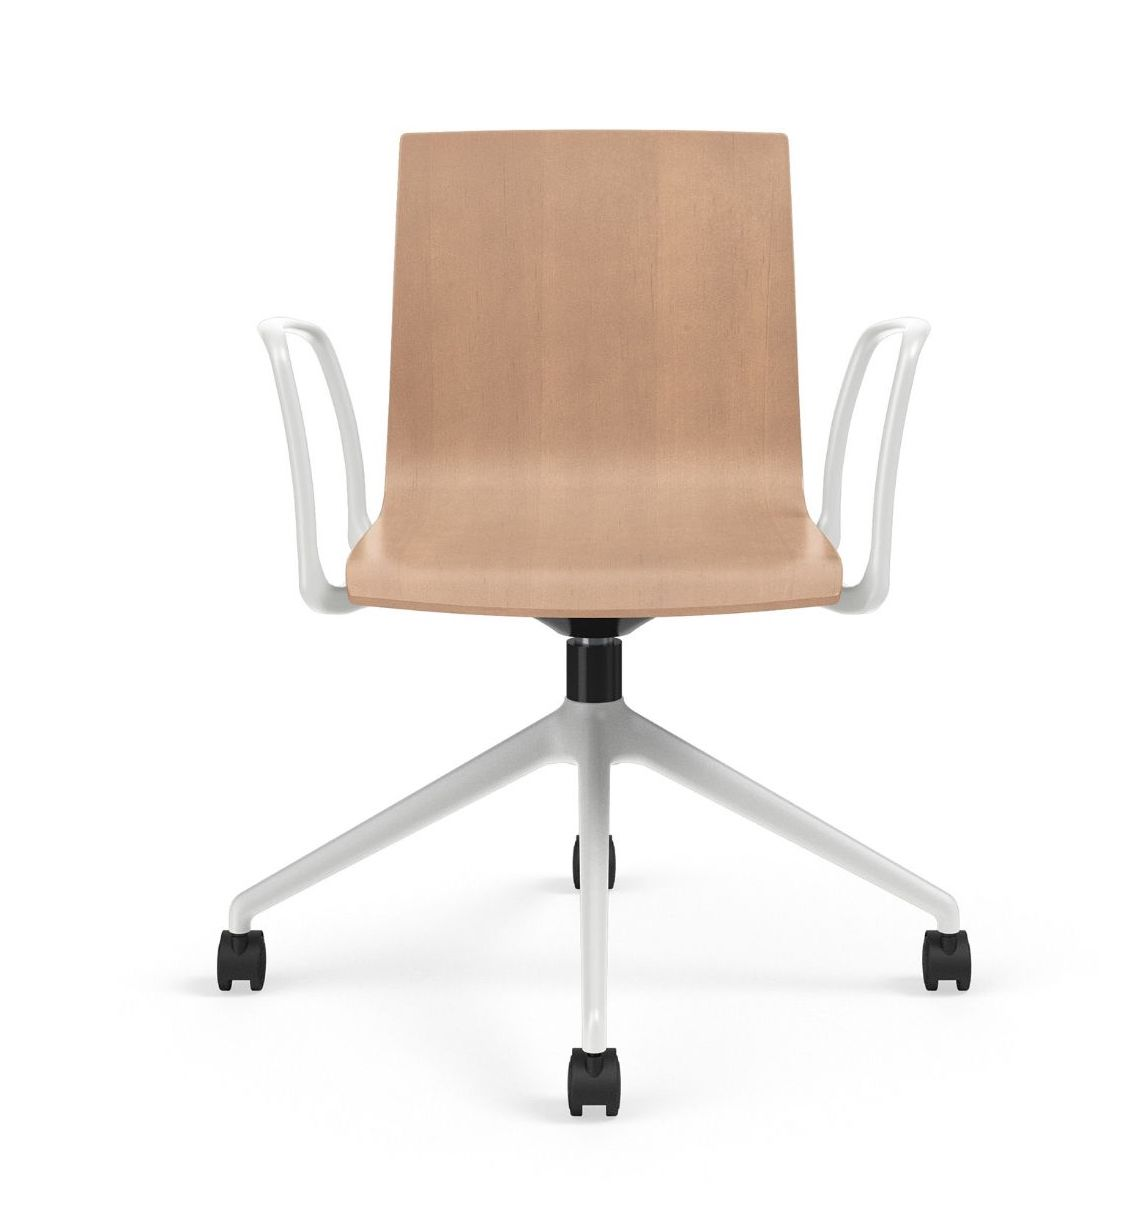 voz swivel chair - front view